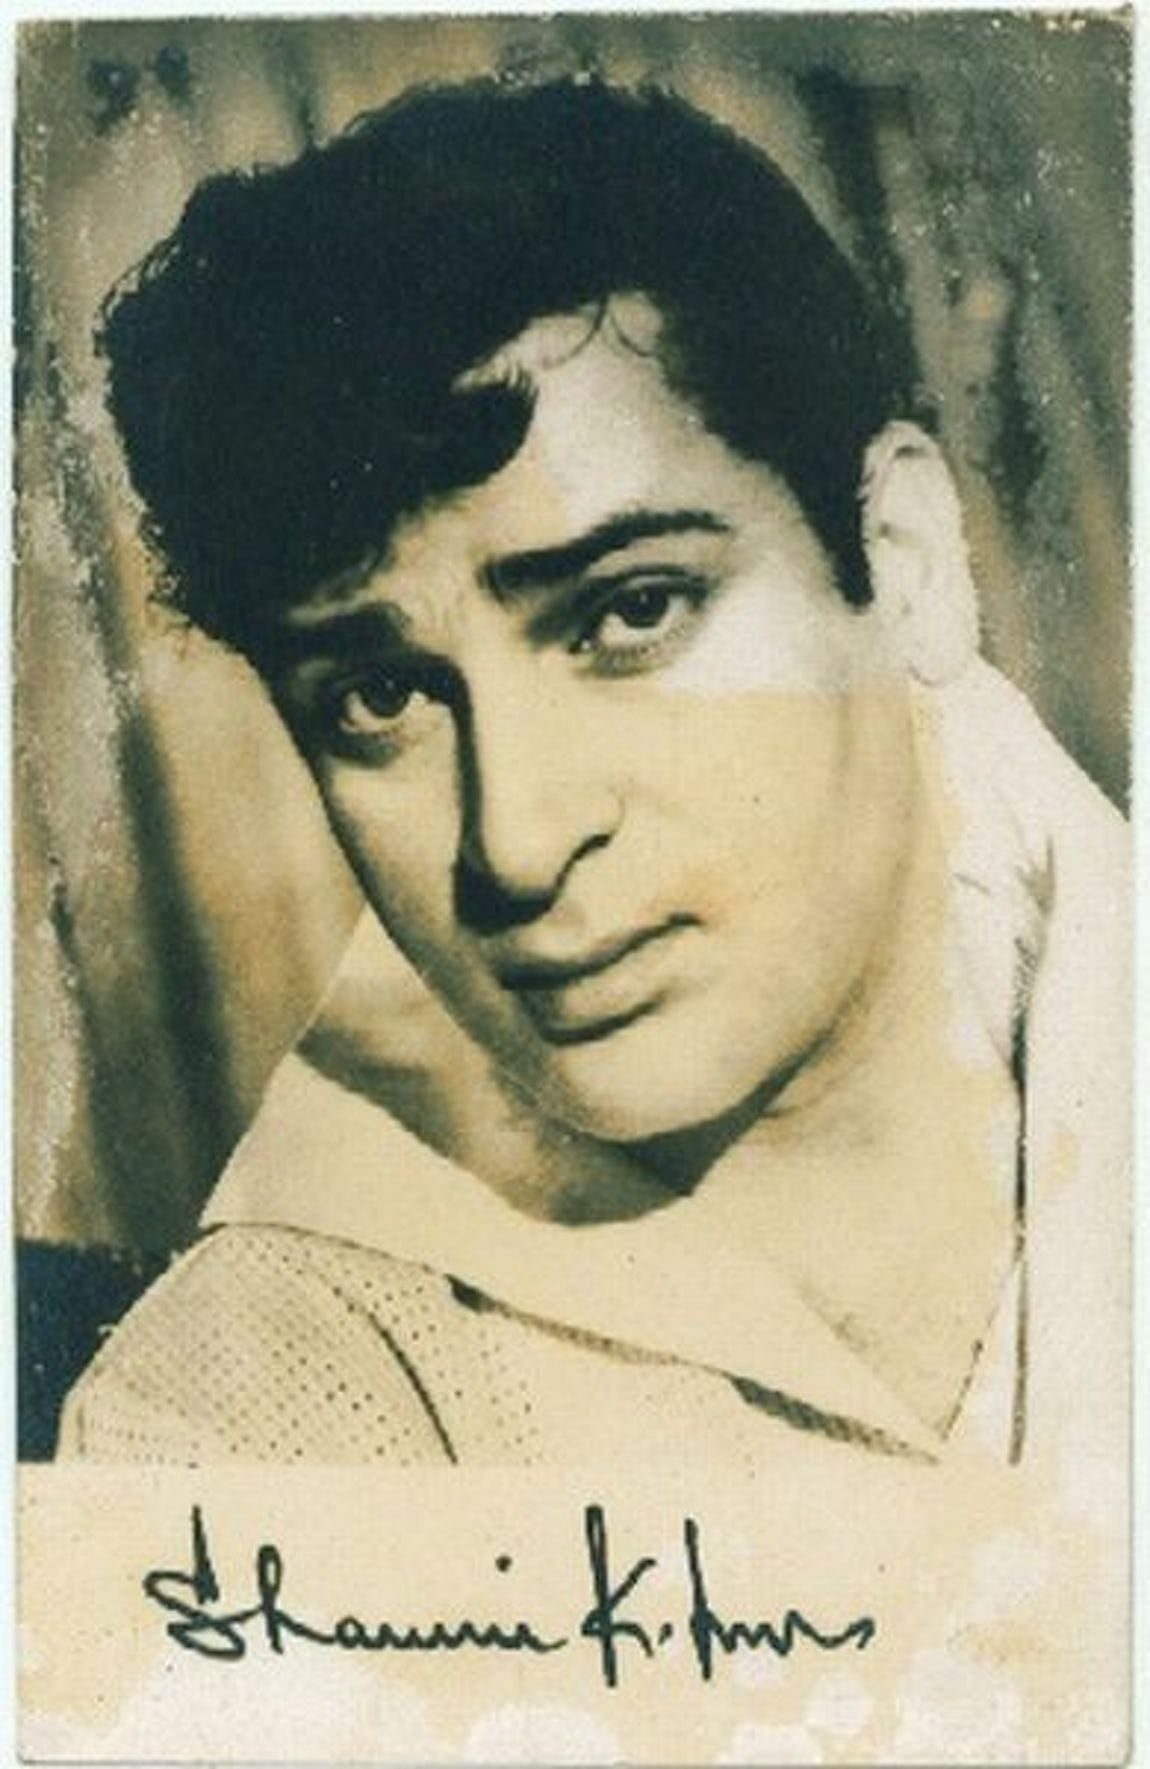 An autographed photograph of Shammi Kapoor.